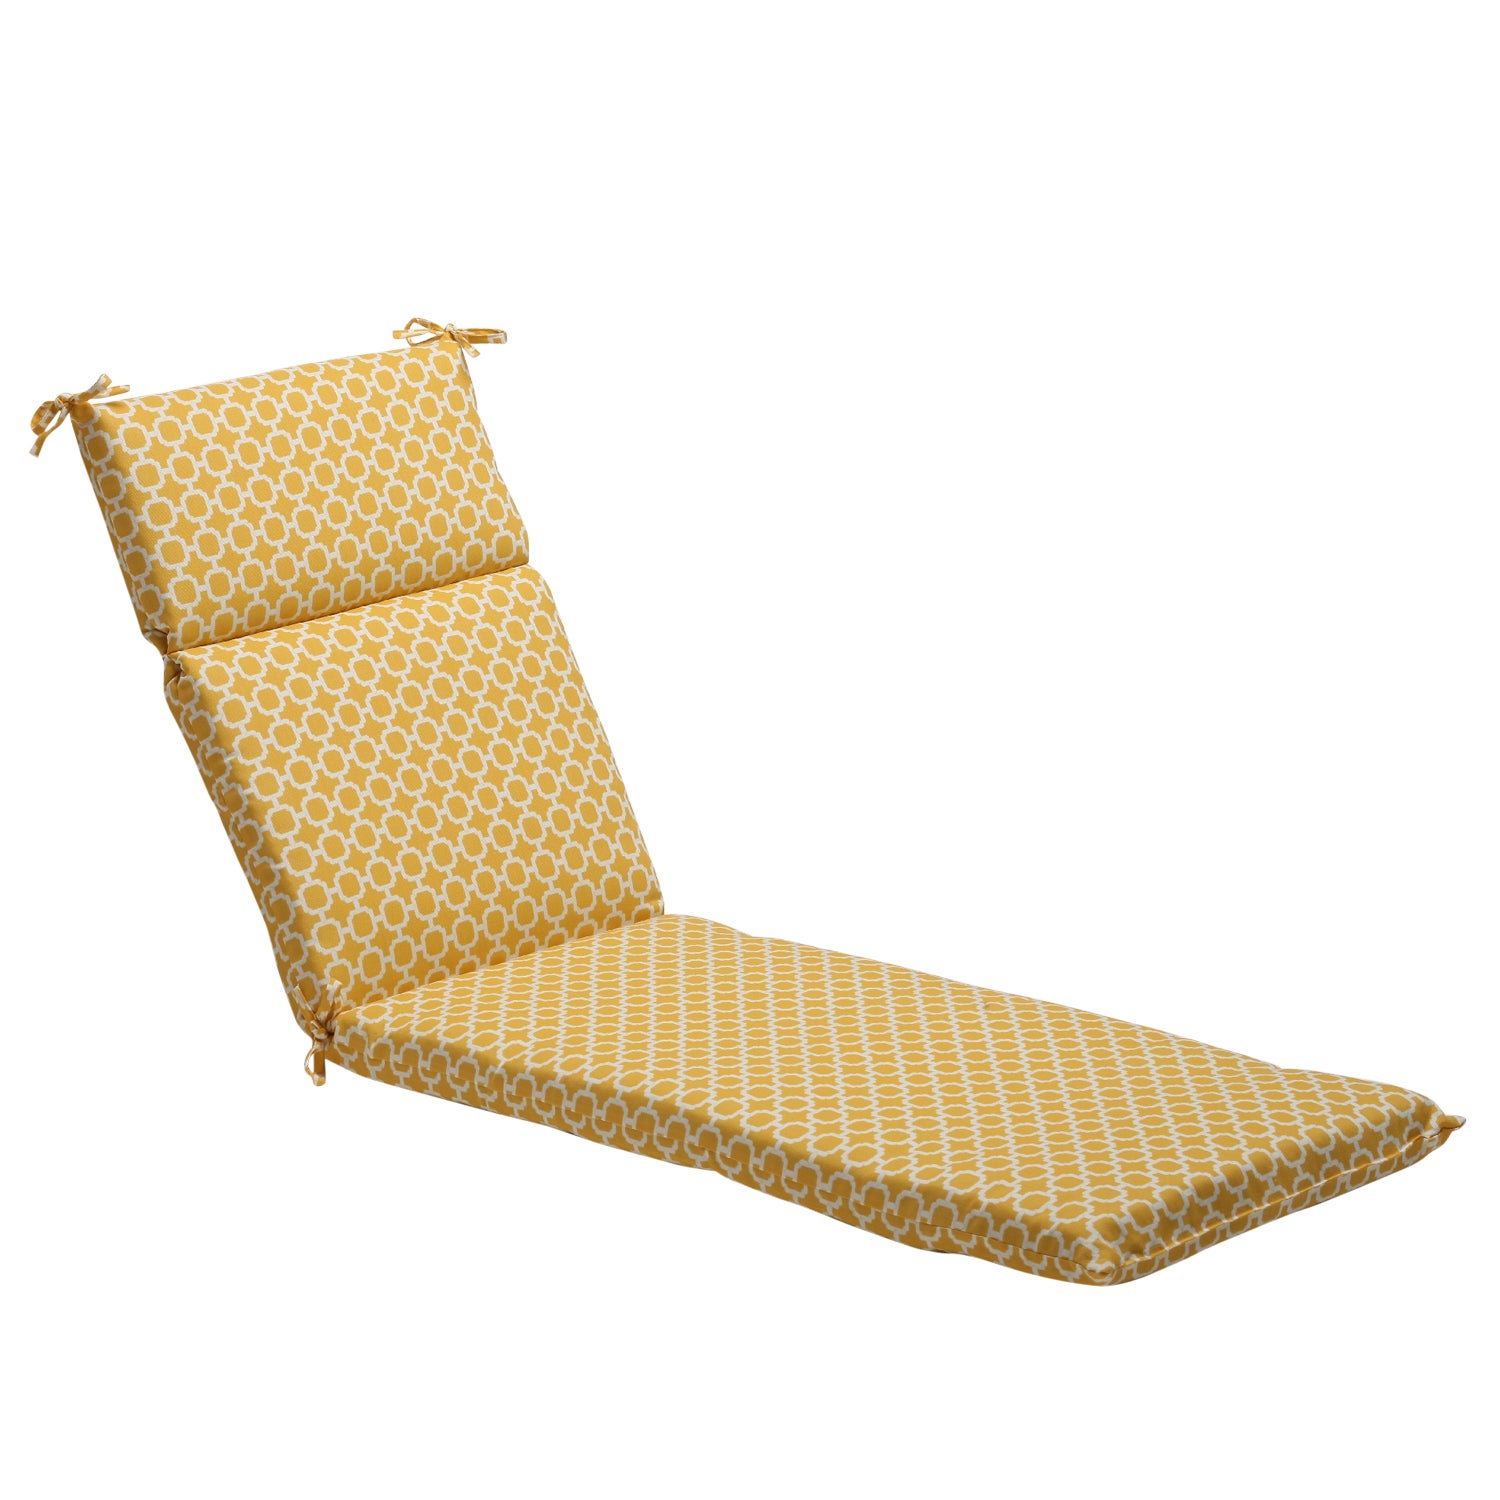 Pillow Perfect Yellow/ White Contemporary Geometric Outdoor Chaise Lounge Cushion at Sears.com